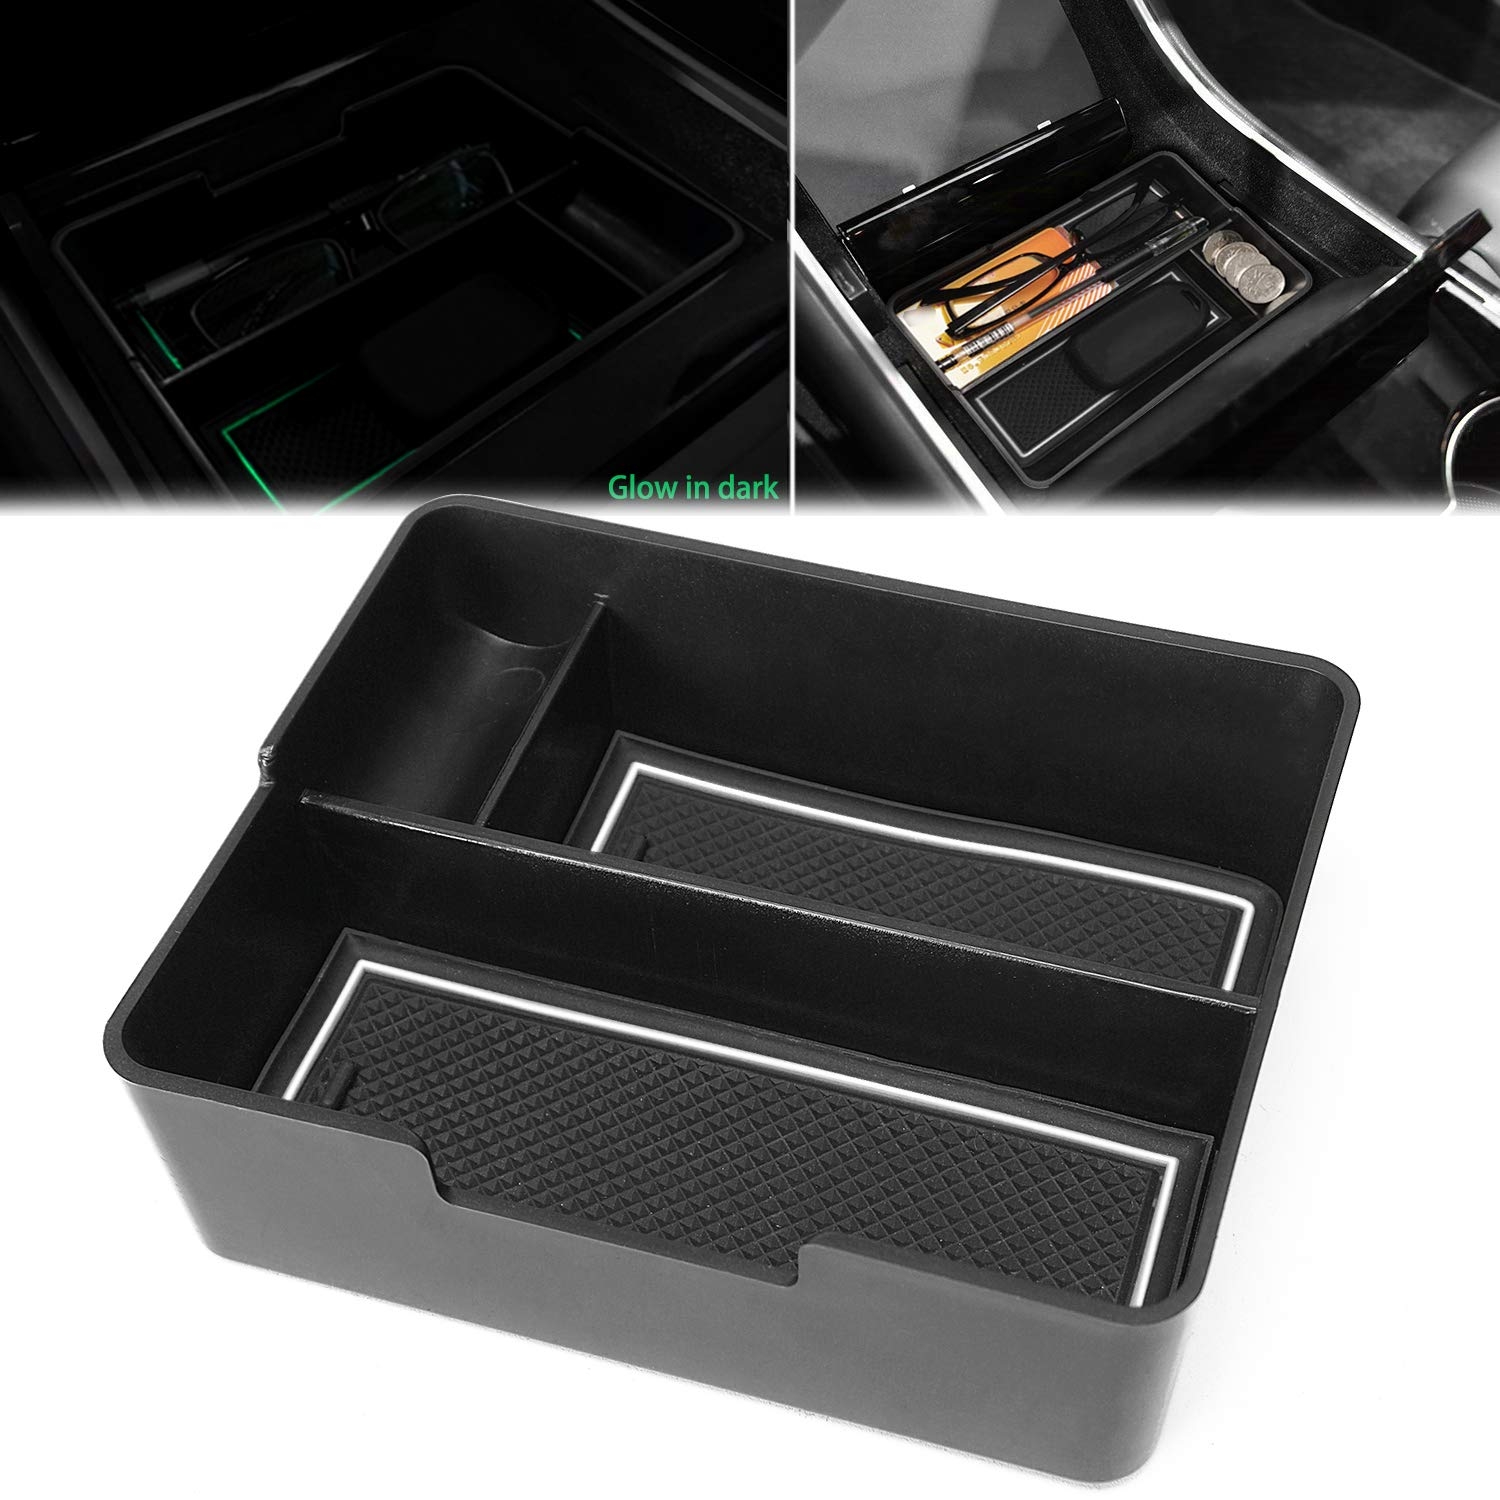 Black Trim Auovo Center Console Organizer Tray Fits for Tesla Model 3 Interior Accessories Secondary Storage Box with Coin Holder